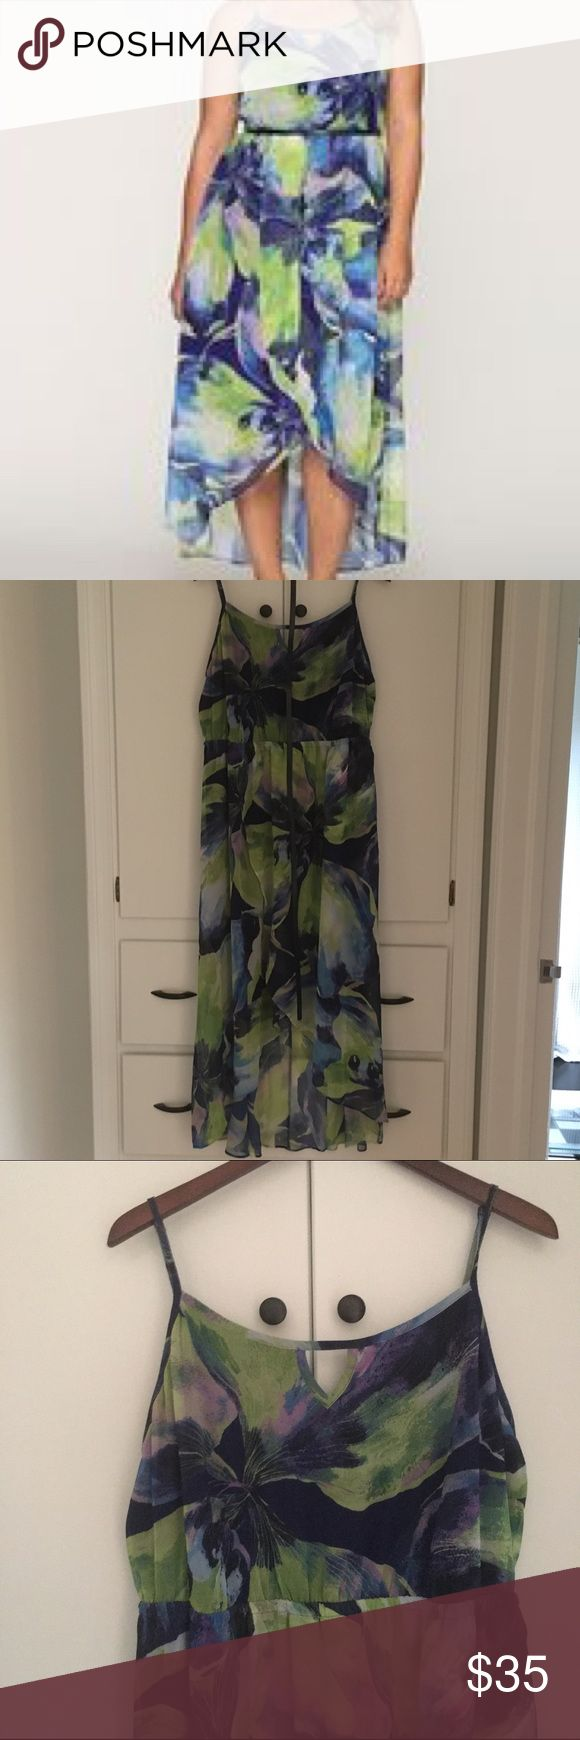 Size 18/20 Land Bryant Hi-Lo Floral Maxi Love love loved this dress! Wore it to a wedding once, and received DOZENS of compliments! Fits an 18 or 20... belted (comes with navy skinny belt). Looks amazing with black strappy heels💫 Asking $35 OBO Lane Bryant Dresses High Low